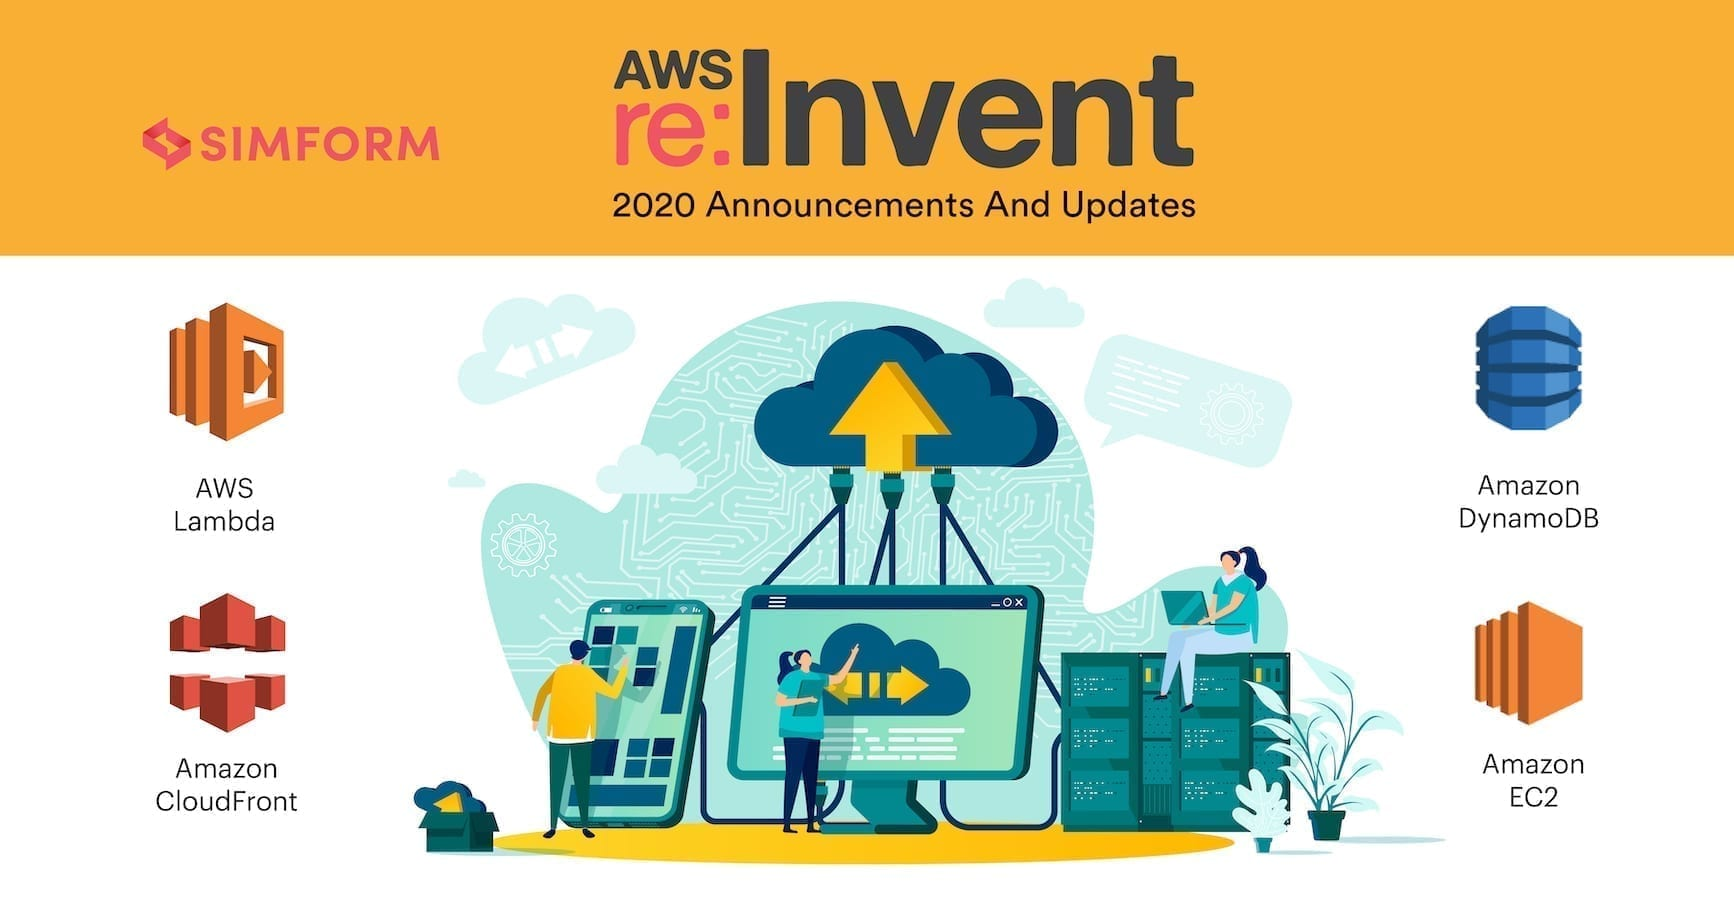 Cover Image - AWS reInvent 2020 Announcements